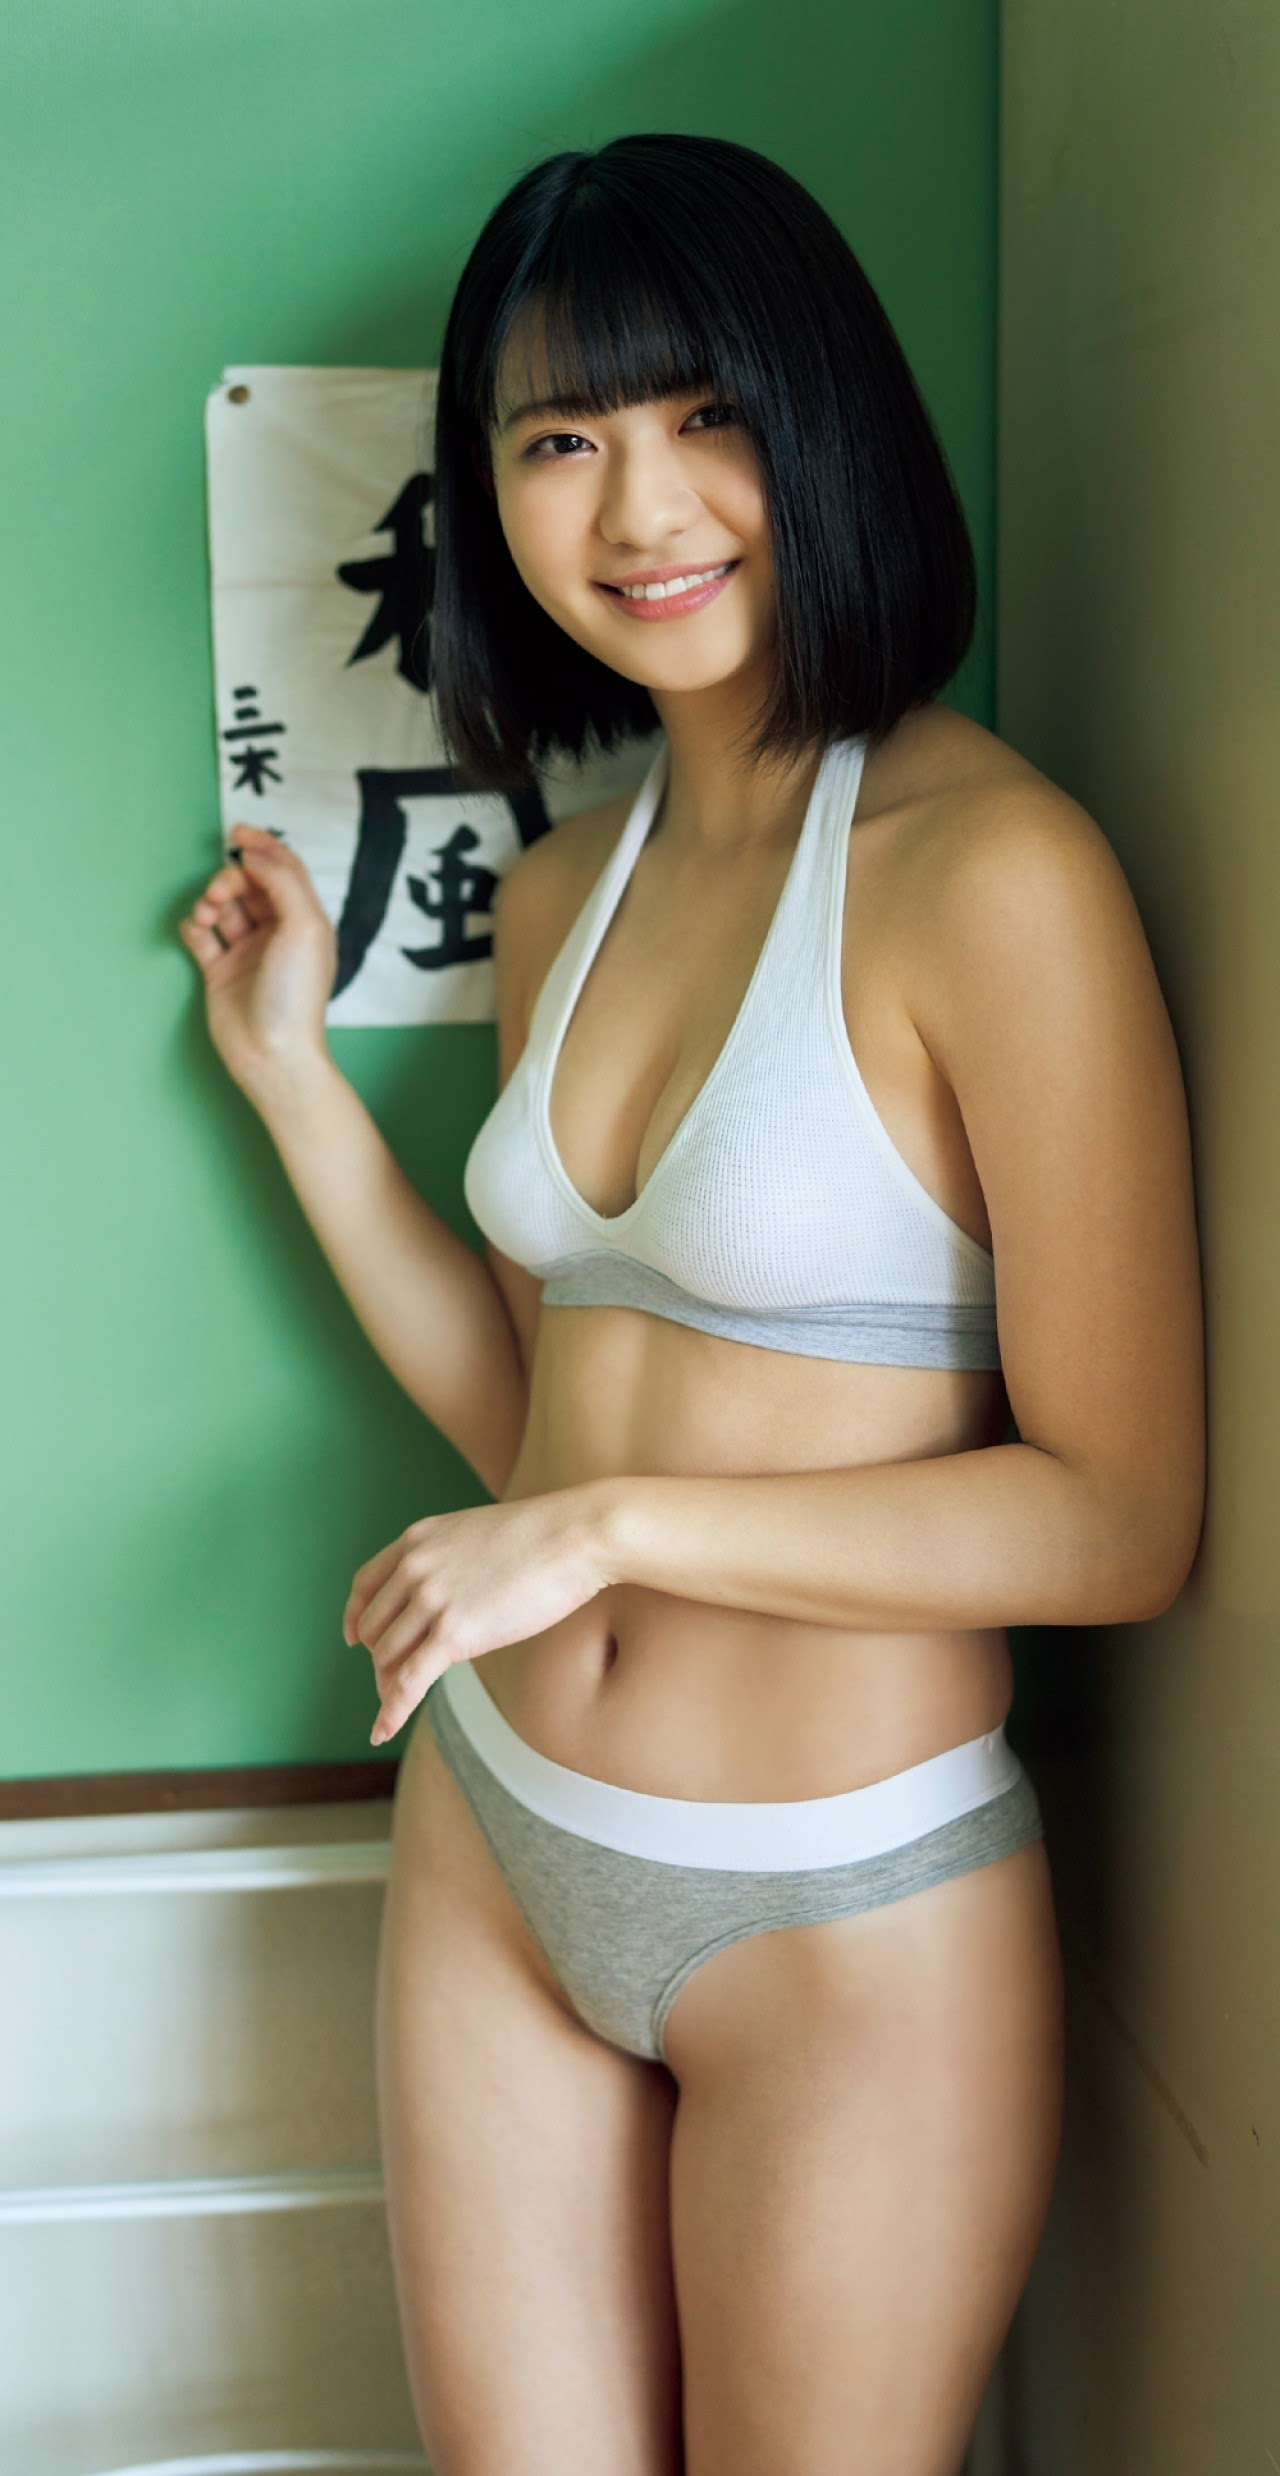 Minami Yamada, a beautiful and innocent girl became the last idol in swimsuit She shows us her beautiful pure white body Junkiso Bikini 2020008